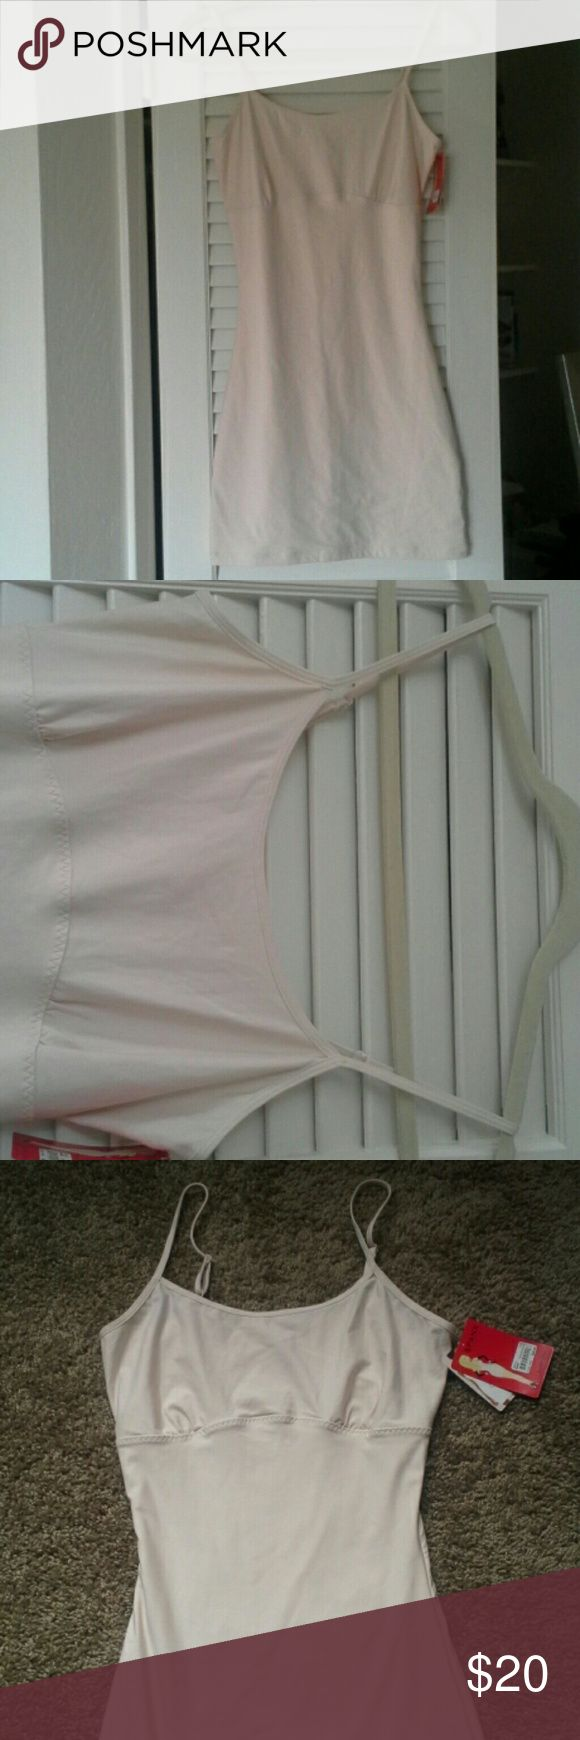 Spanx slip Brand new adjustable strap spanx slip .  Top to bottom measures 26.  Cotton lightweight.  Double layer tummy control.  Great for under your spring and summer dresses. SPANX Intimates & Sleepwear Chemises & Slips